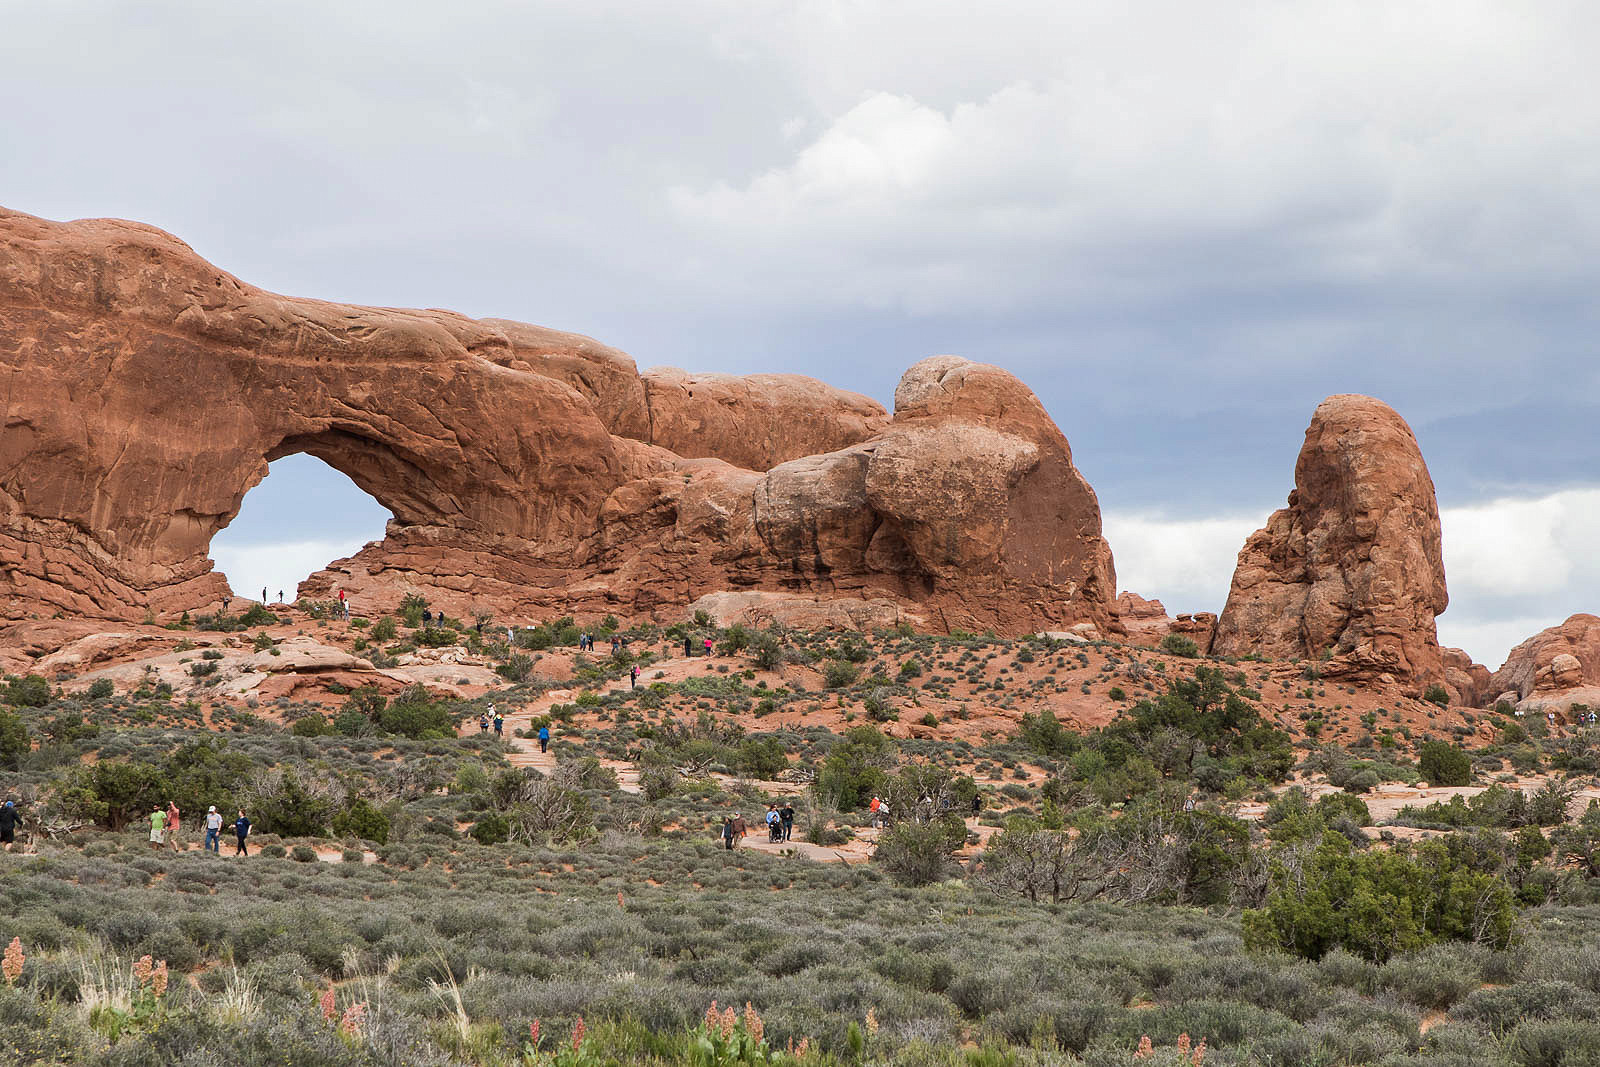 arches_CL_blog_007